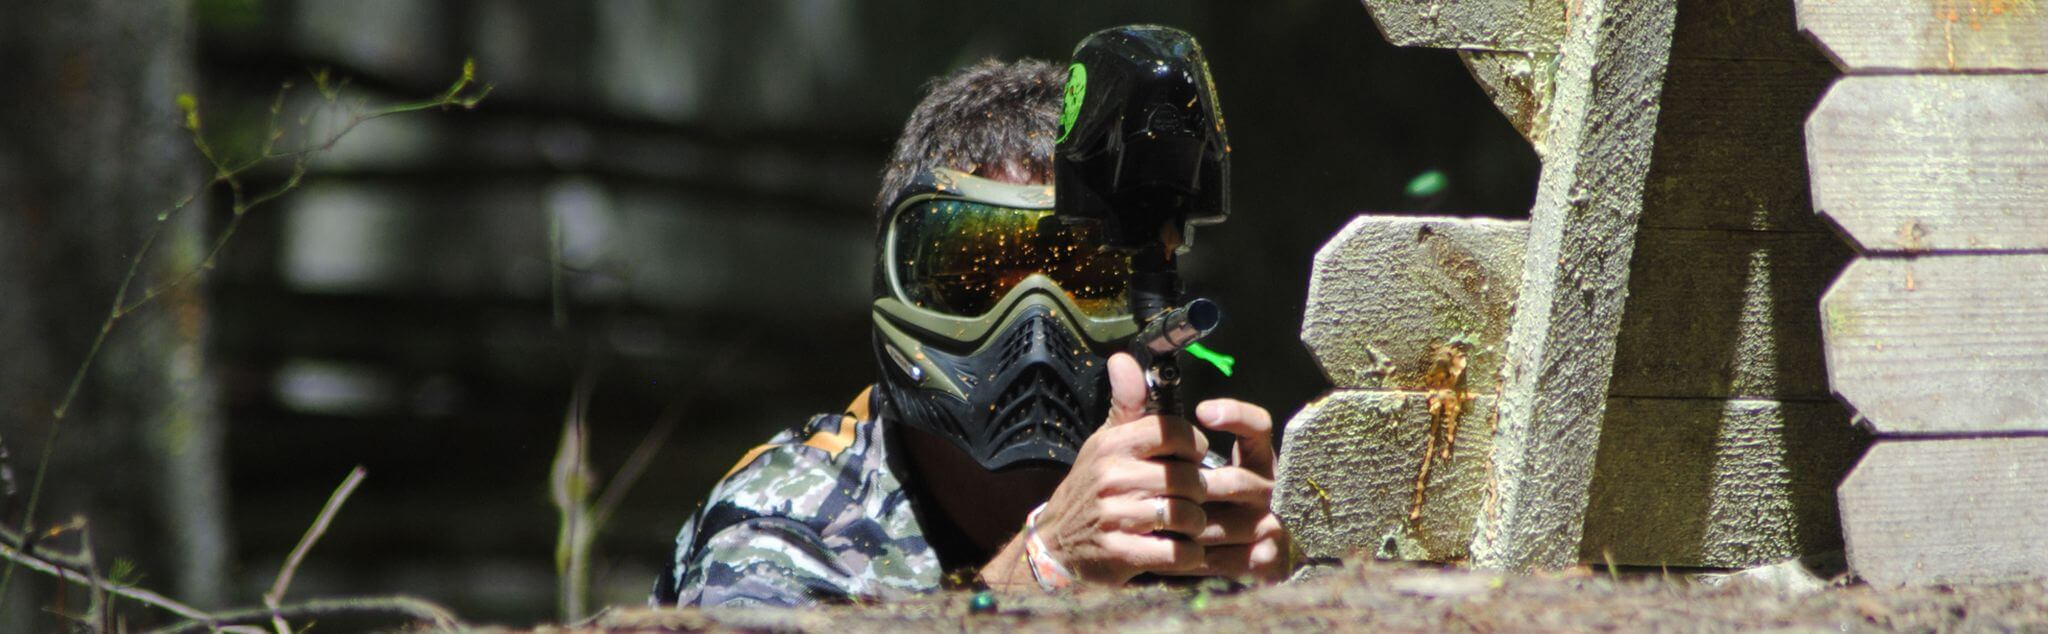 Paintball en Quijorna